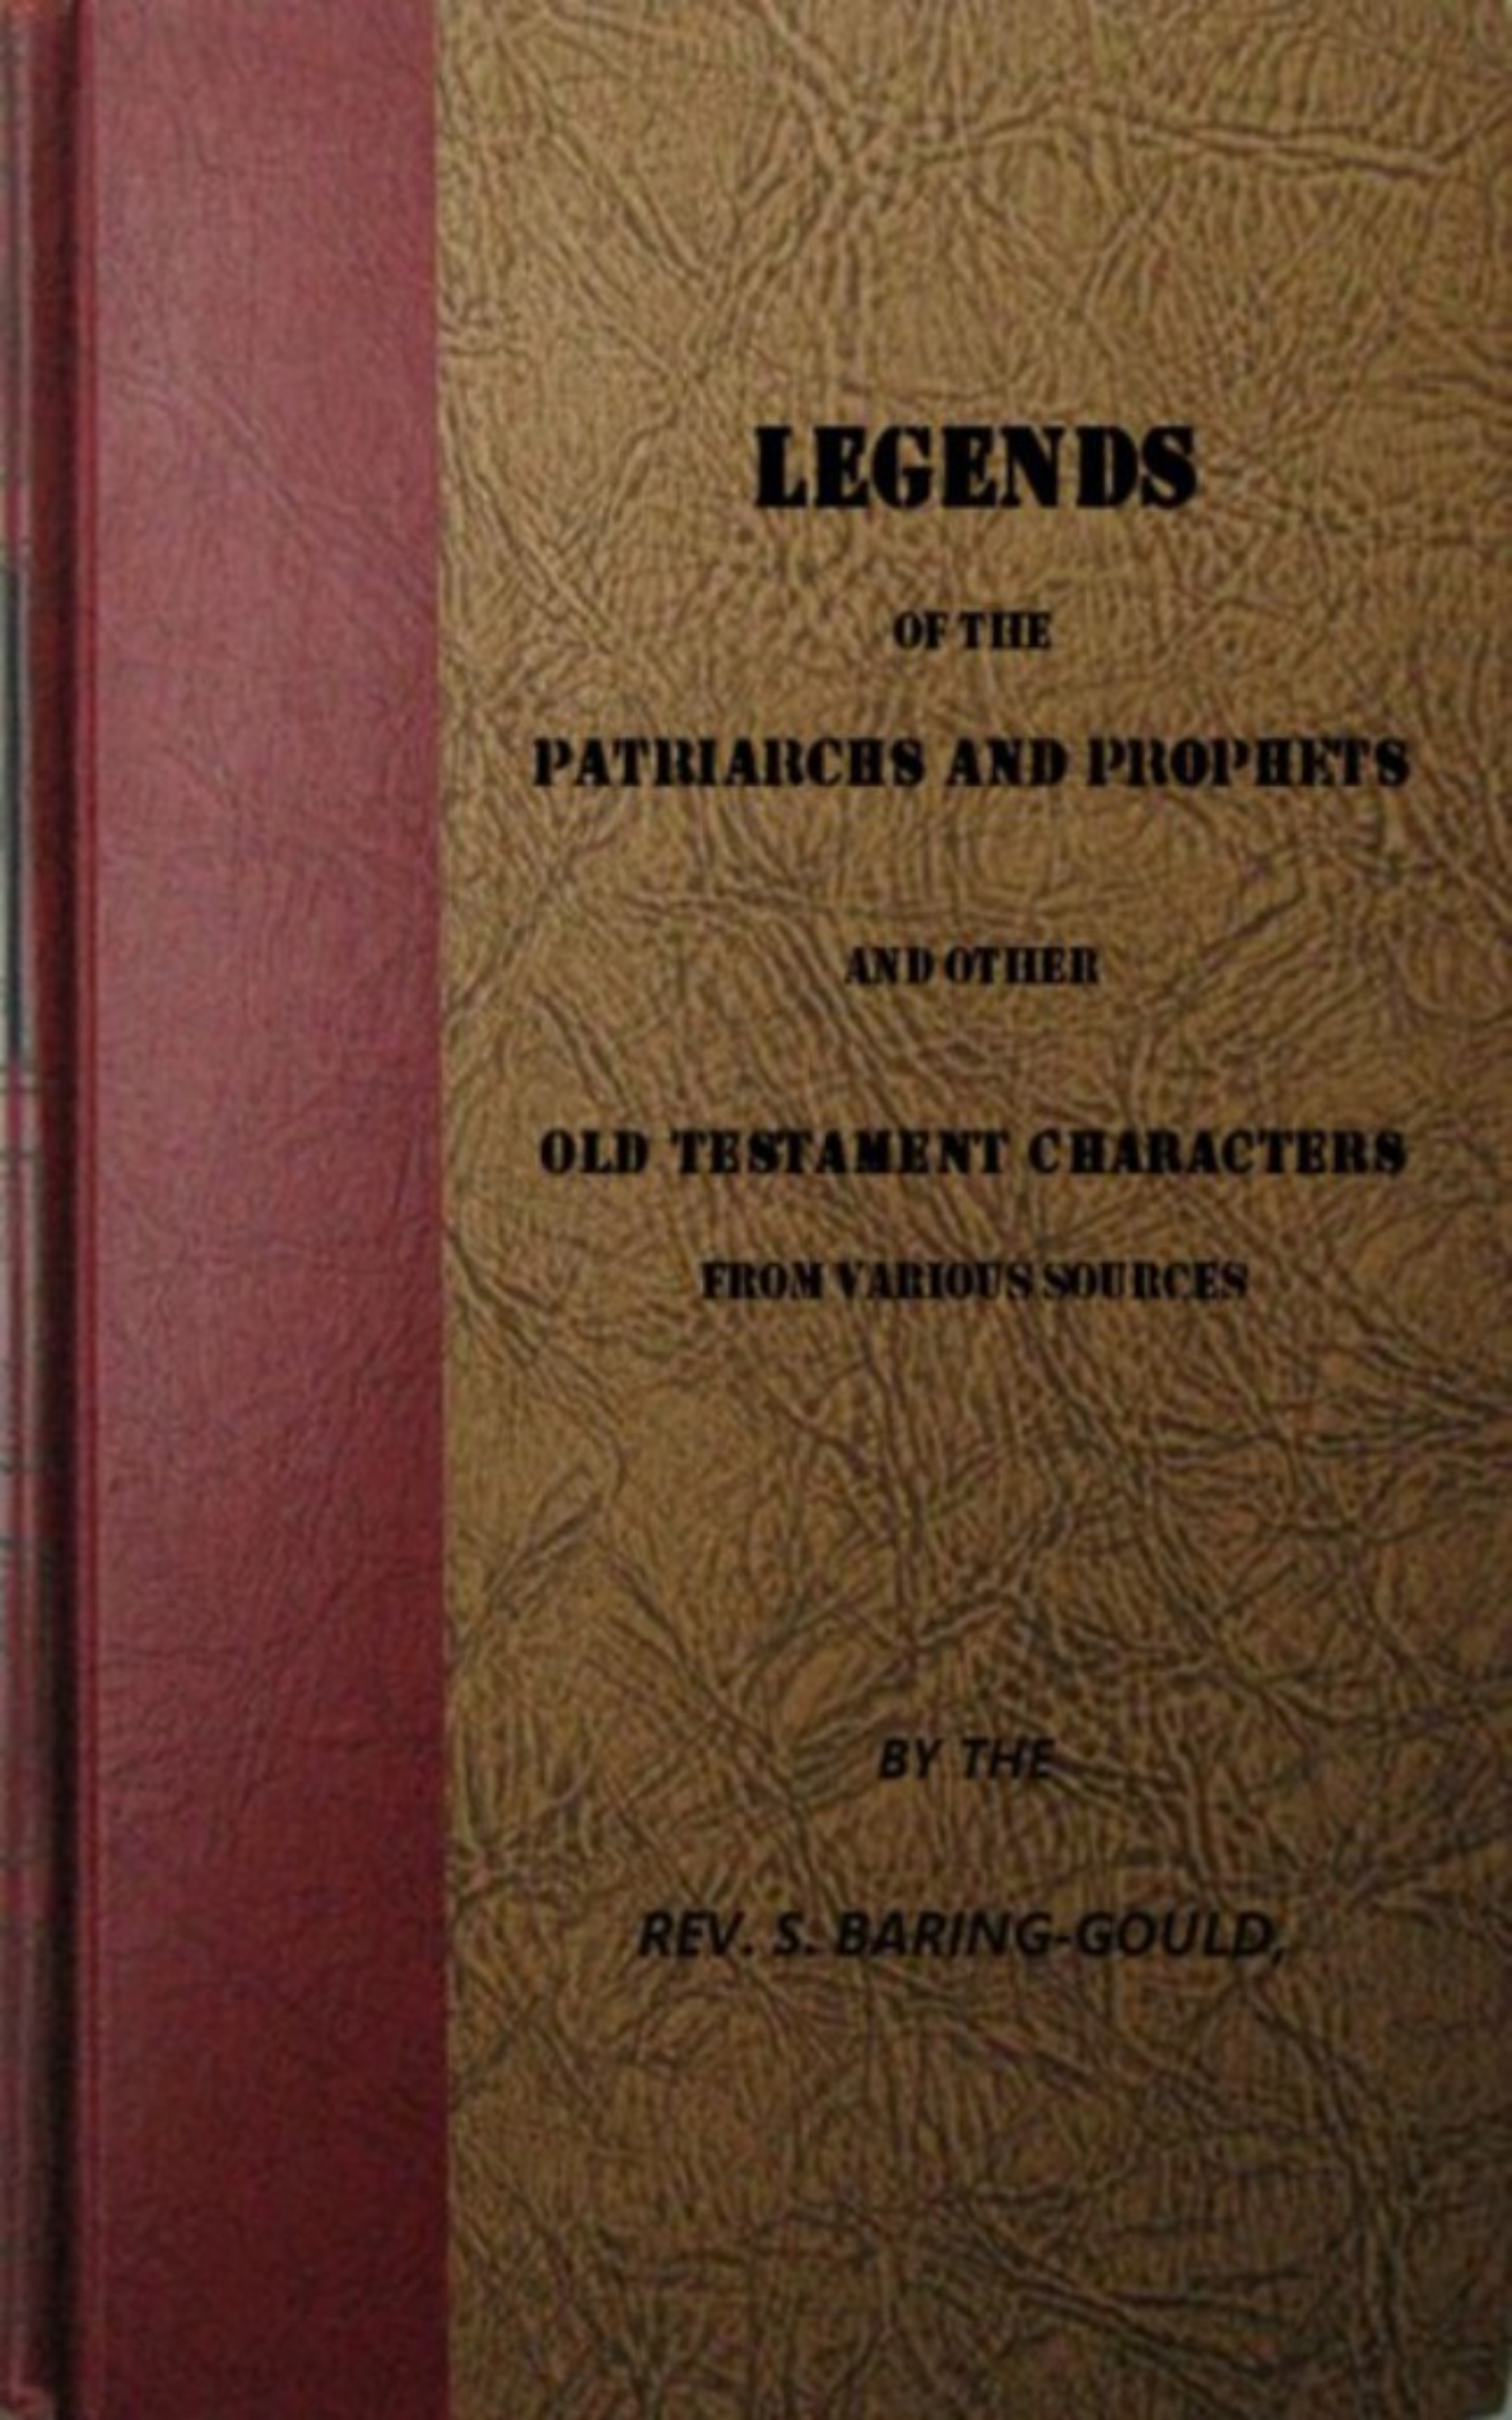 S. Baring-Gould Legends of the Patriarchs and Prophets and othtacters from Various Sources han jin h six minor prophets through the centuries nahum habakkuk zephaniah haggai zechariah and malachi